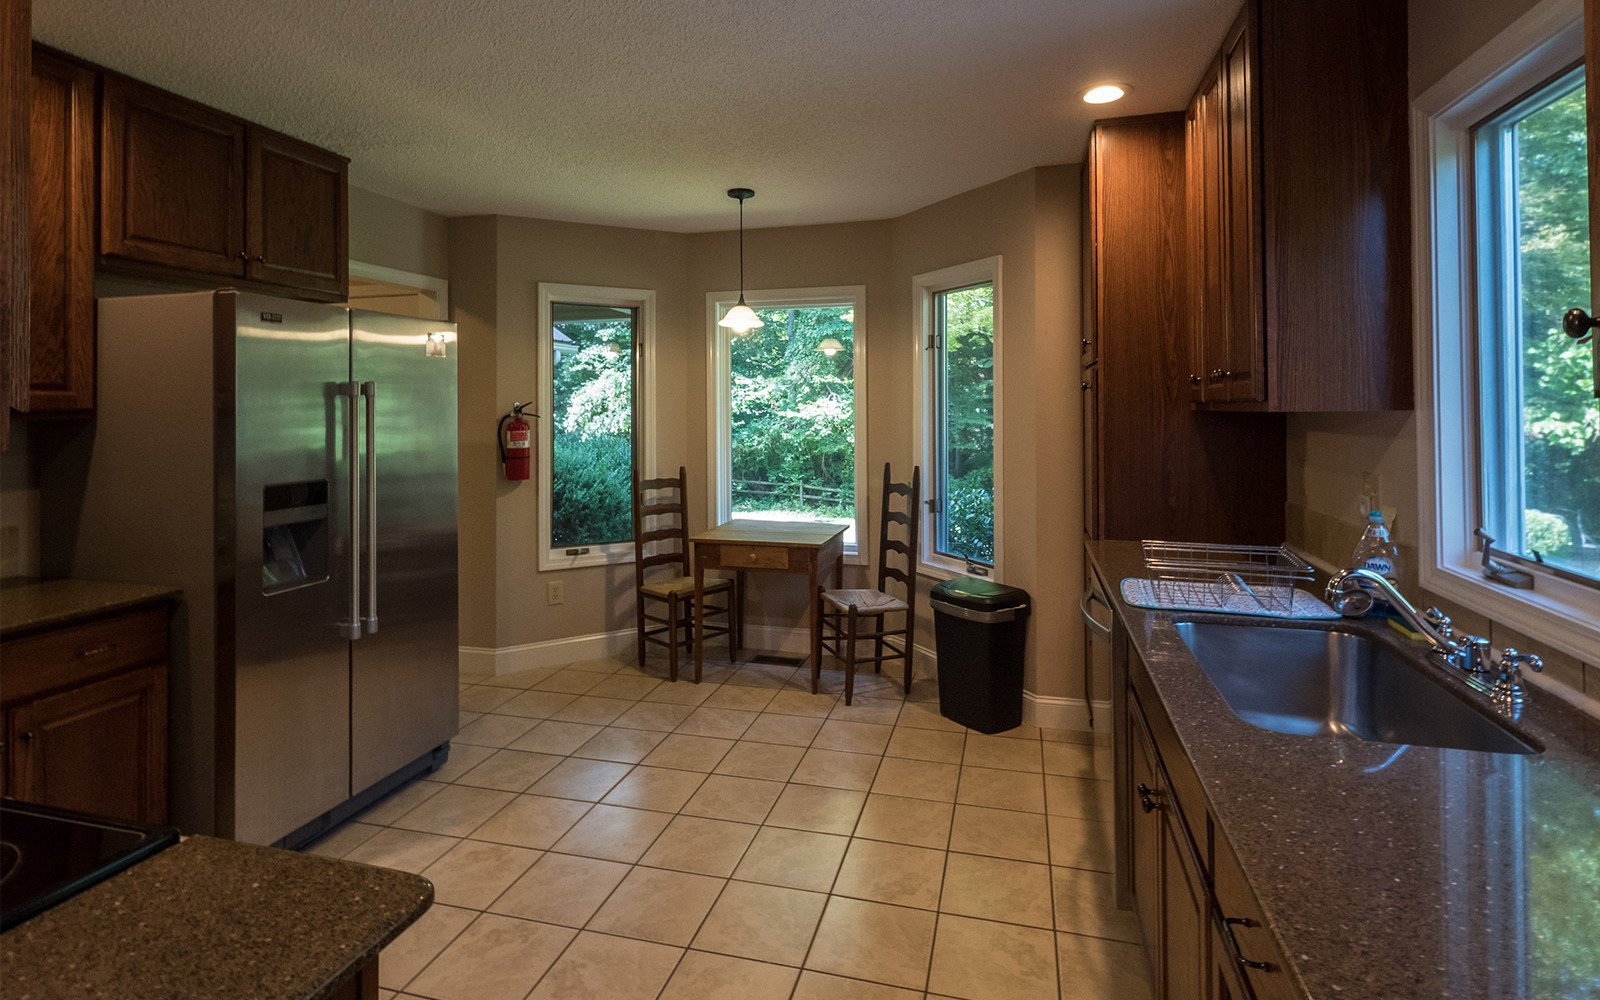 Hilt Street house kitchen - Vacation Homes in Brevard North Carolina